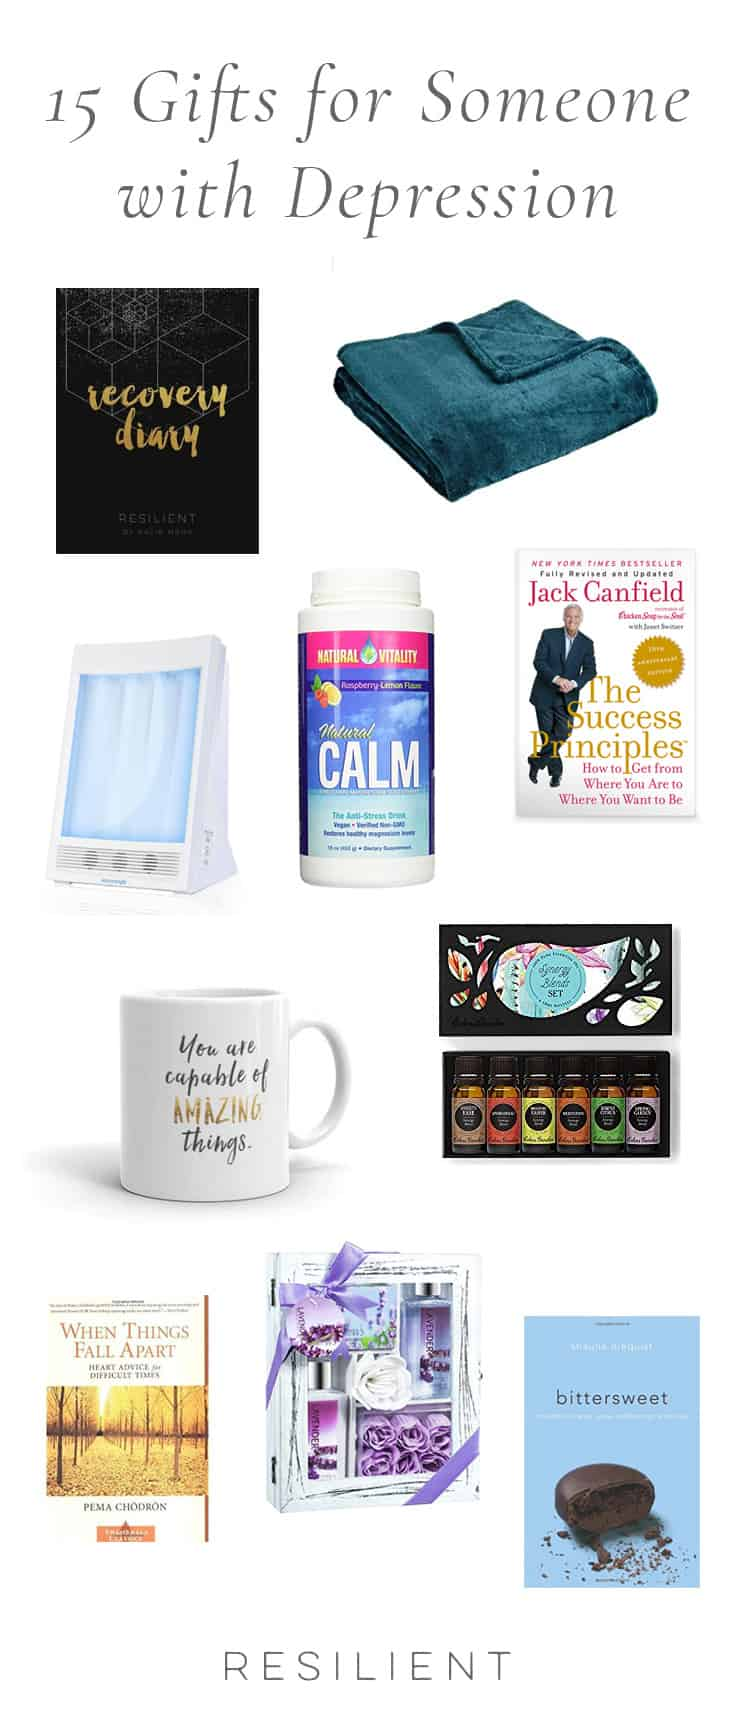 Depression sucks, but sometimes you can make it a little more bearable with a few comforting items or inspiring books. Here are 15 gifts for someone with depression that are sure to brighten their day.